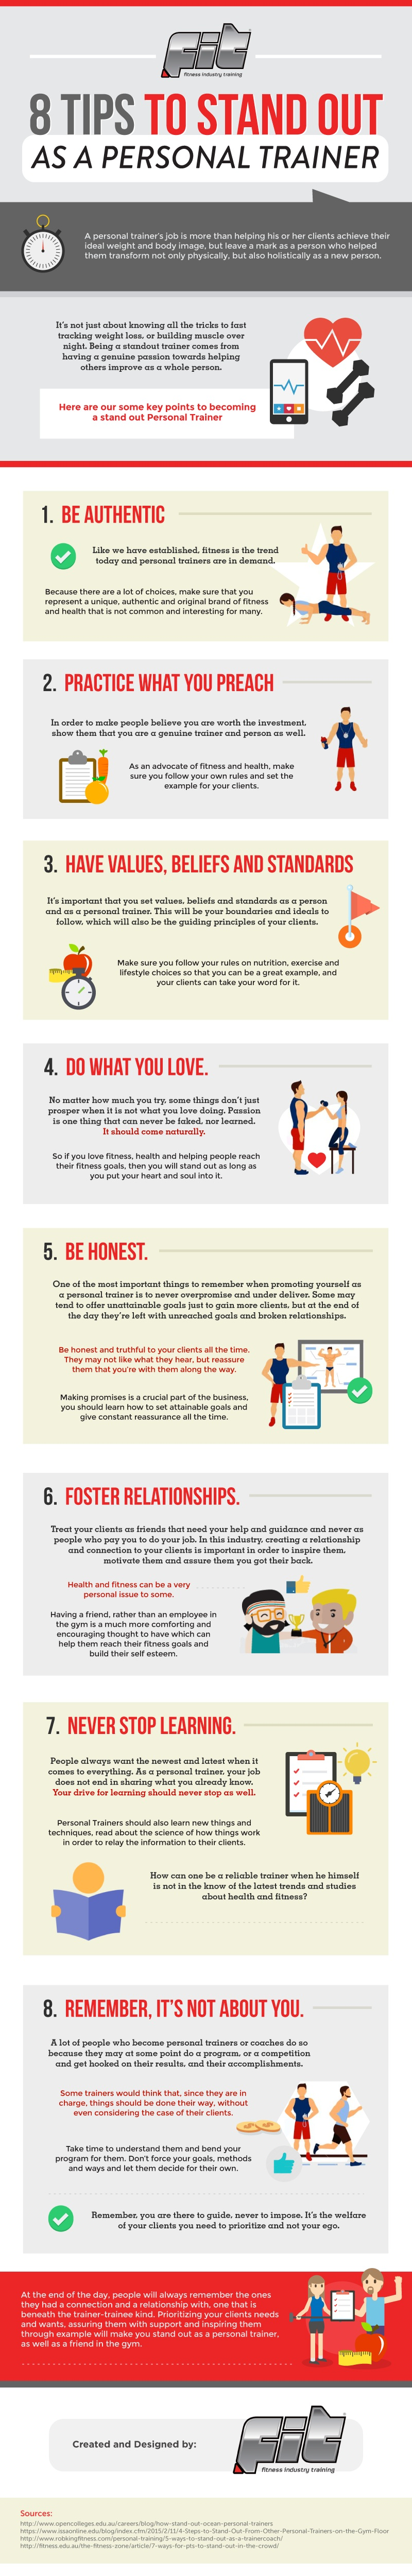 8-tips-to-stand-out-as-a-personal-trainer-hd